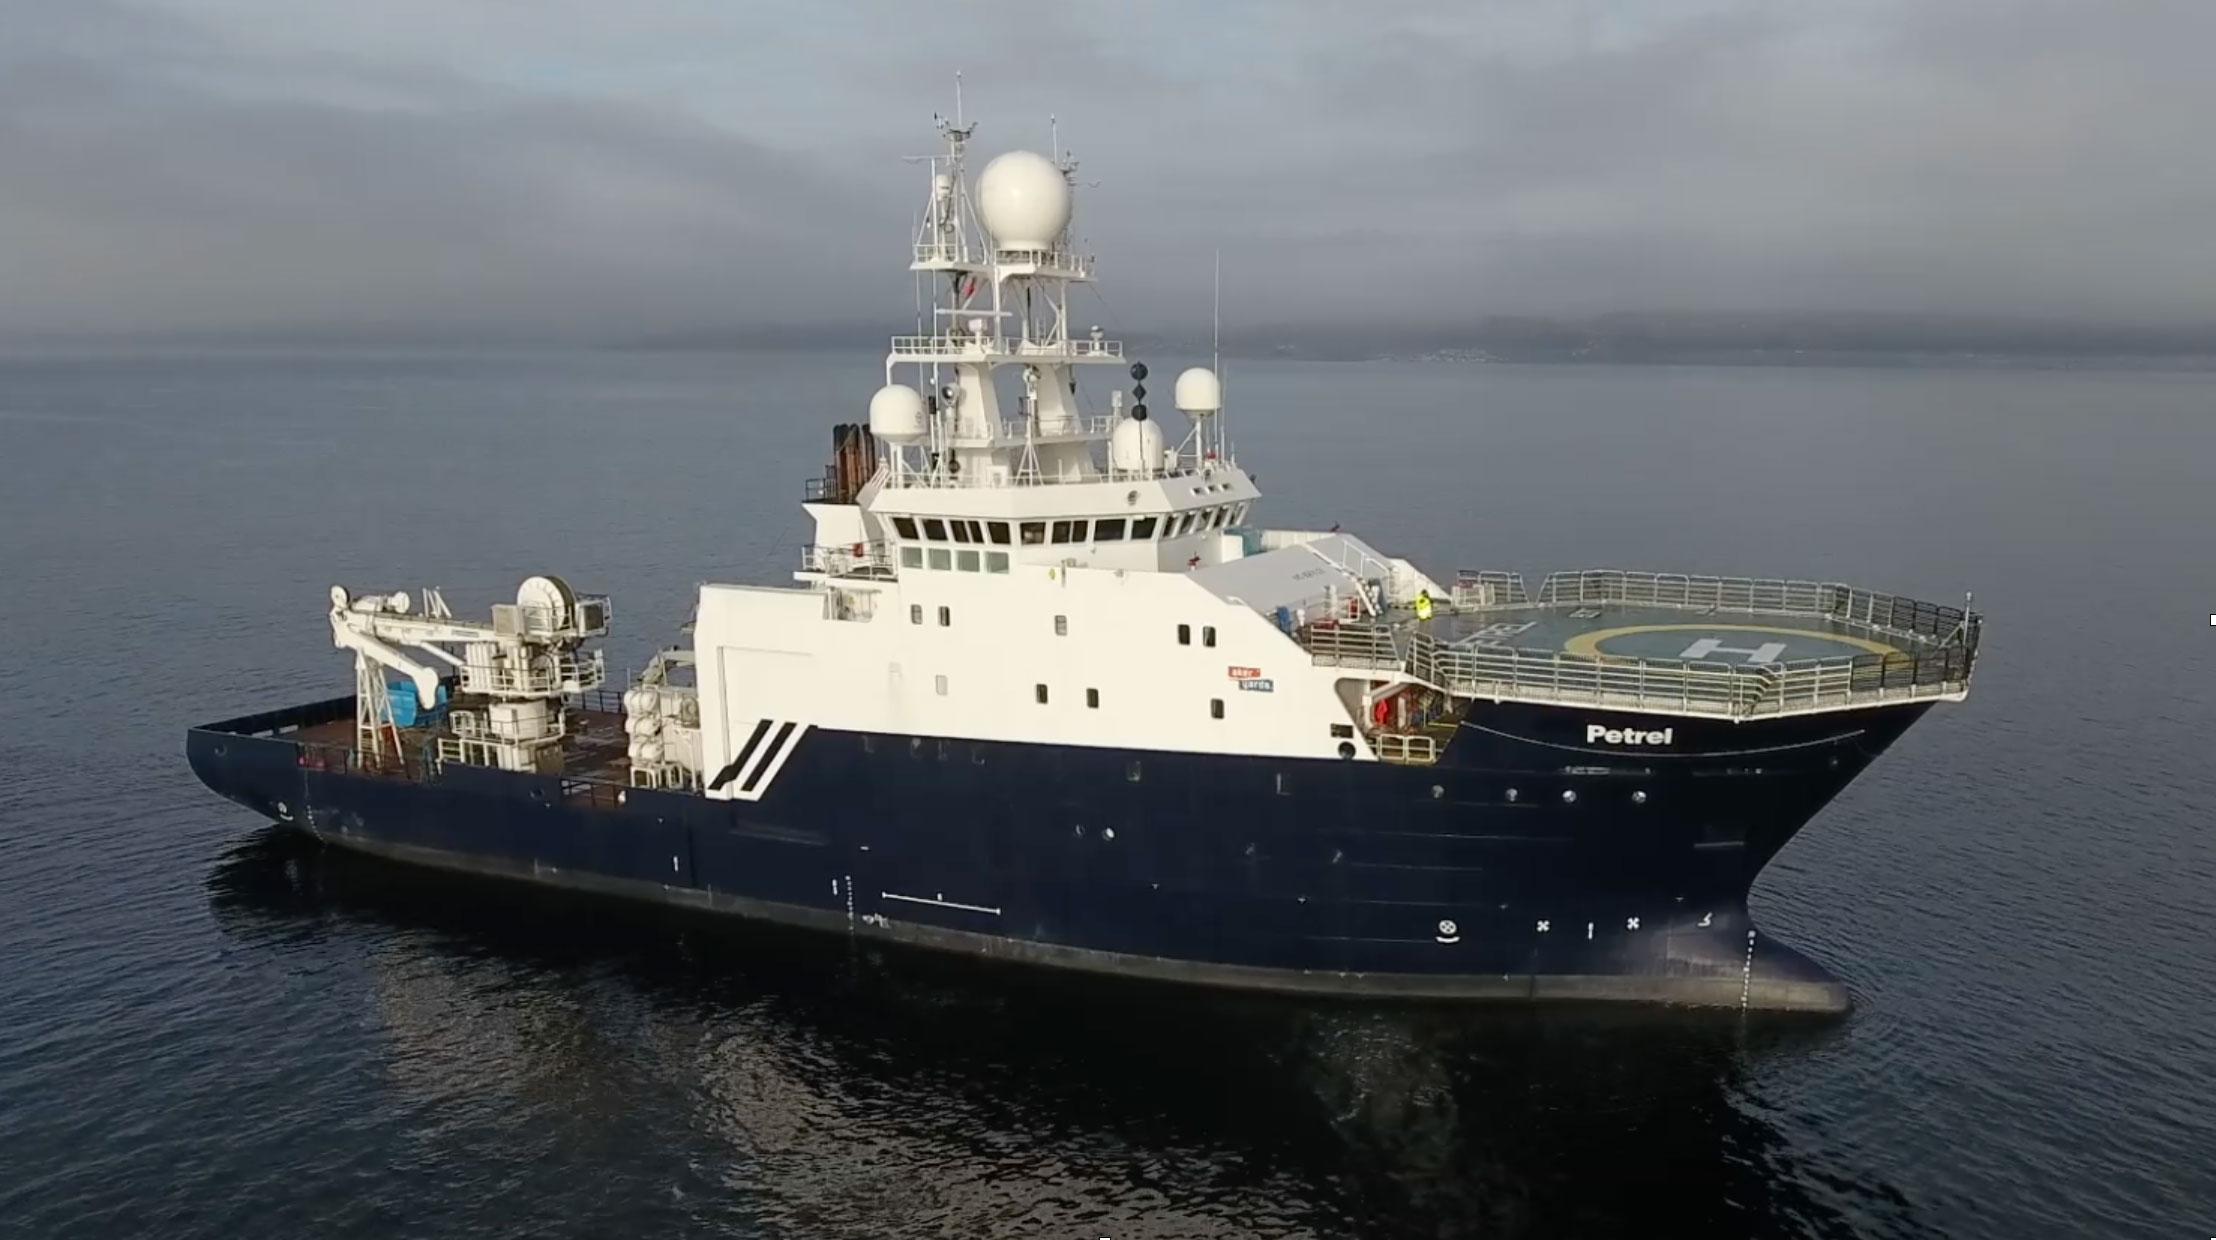 Paul G. Allen's legacy: Uncovering history from the deep ocean